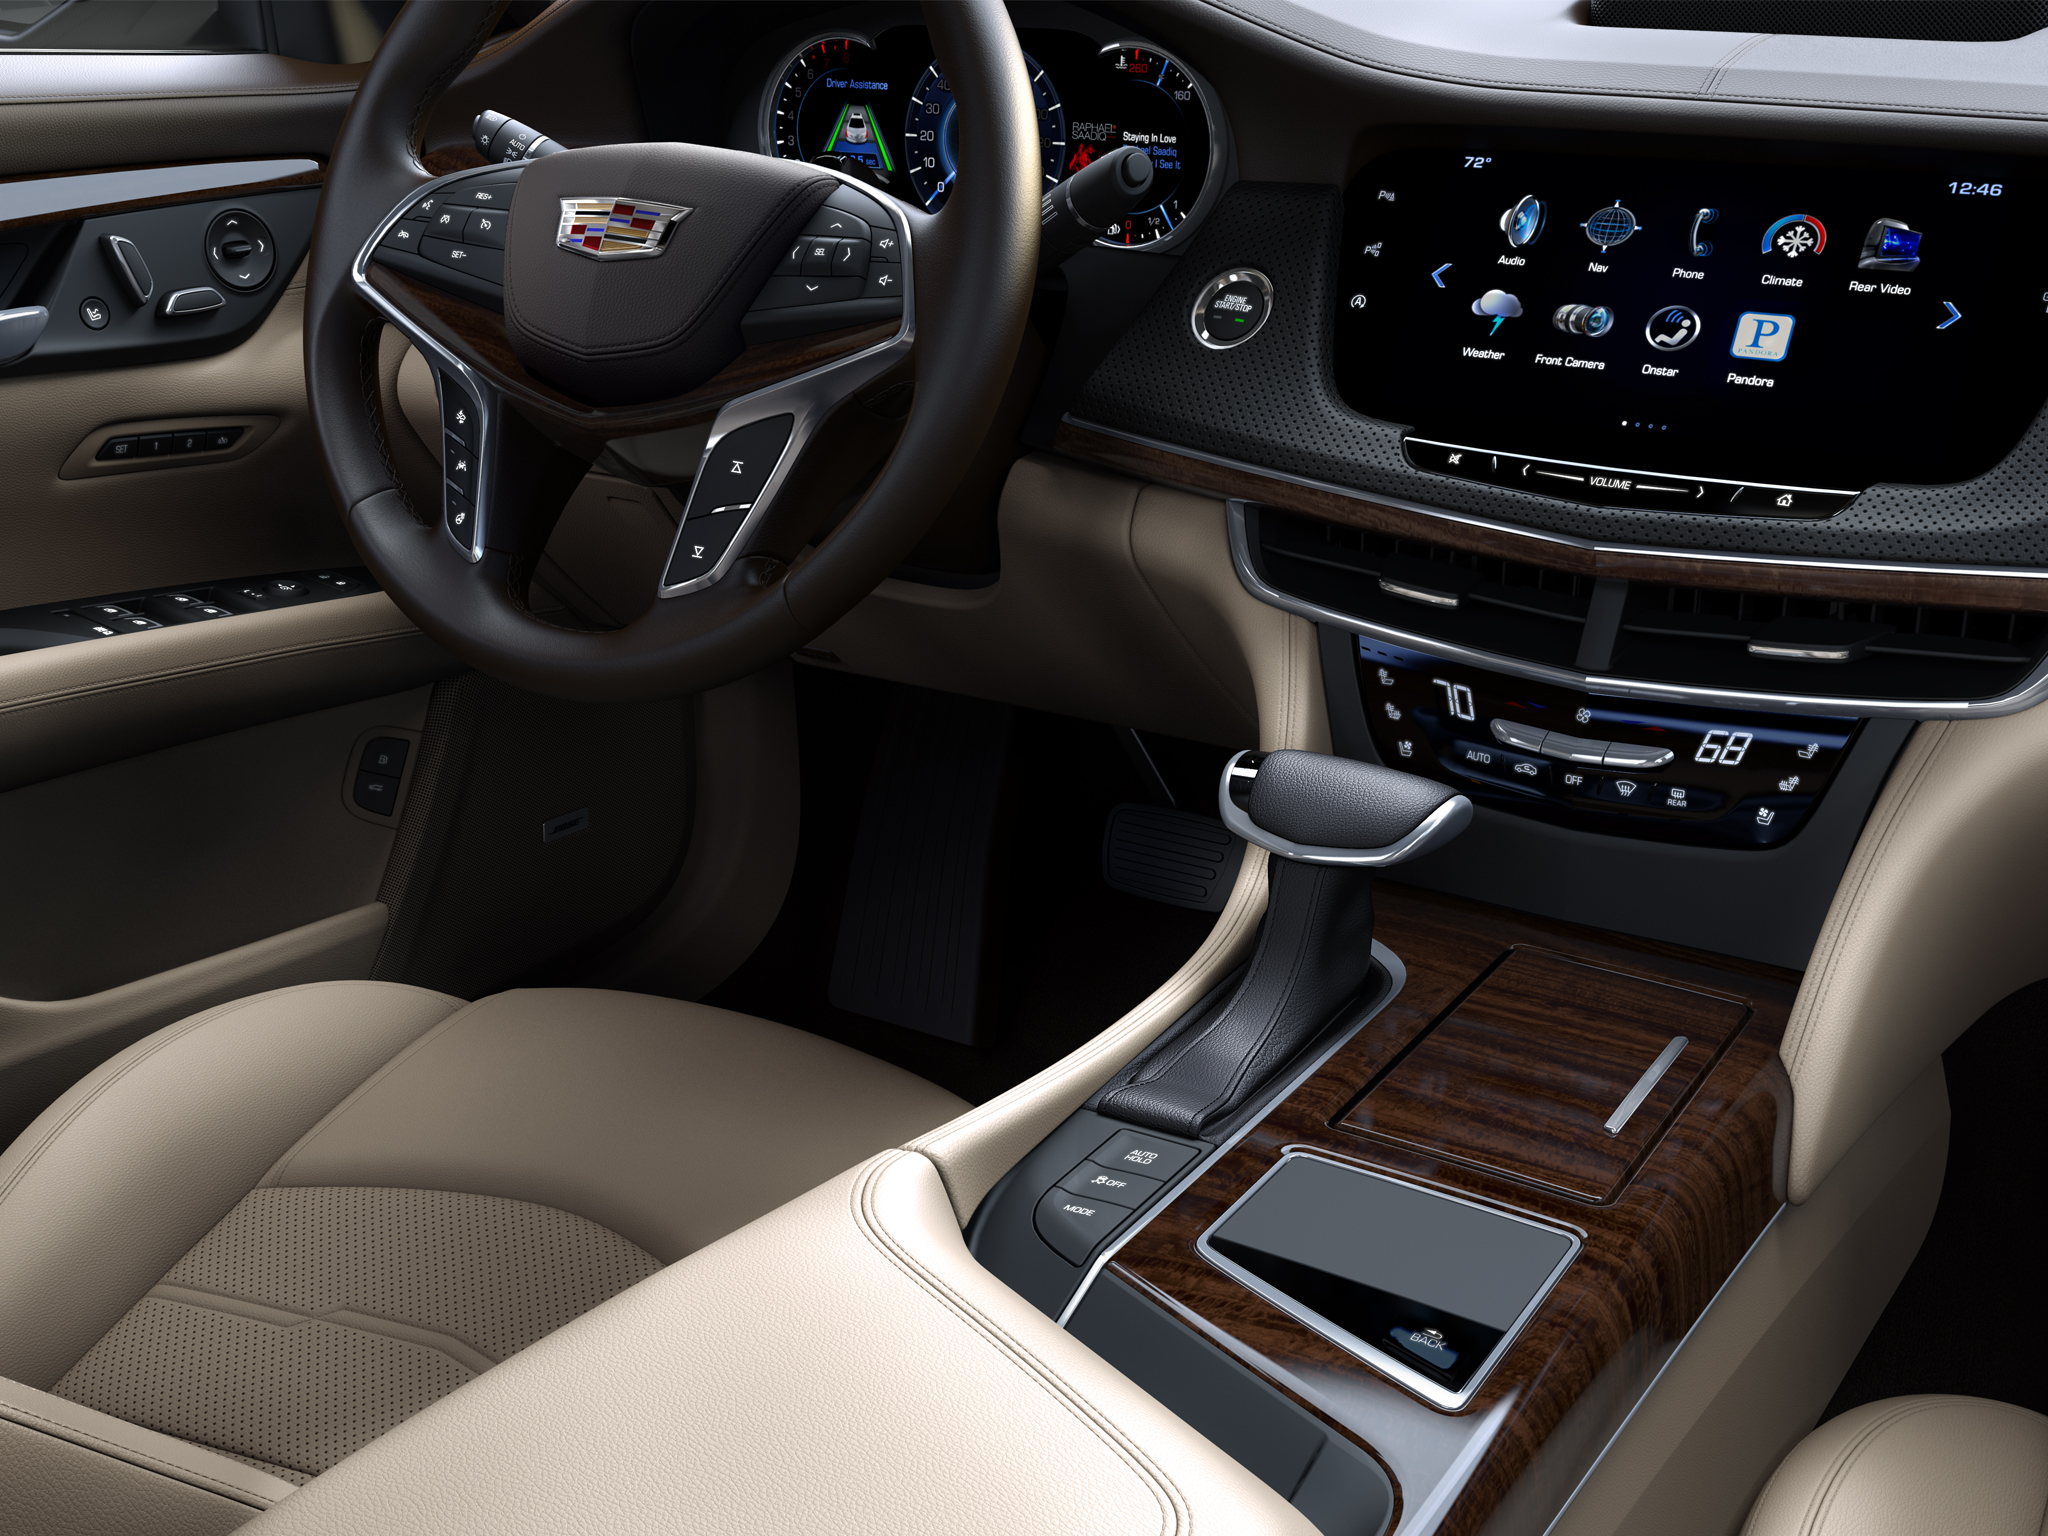 2016 Cadillac CT6 PHEV interior